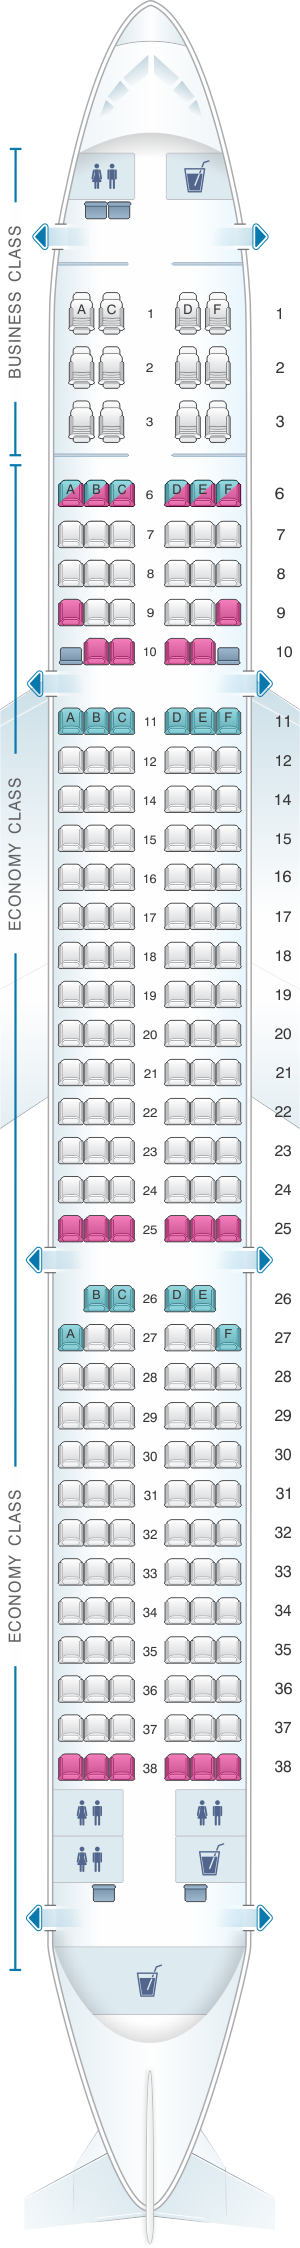 Seat map for SriLankan Airlines Airbus A321 231 Config. 1